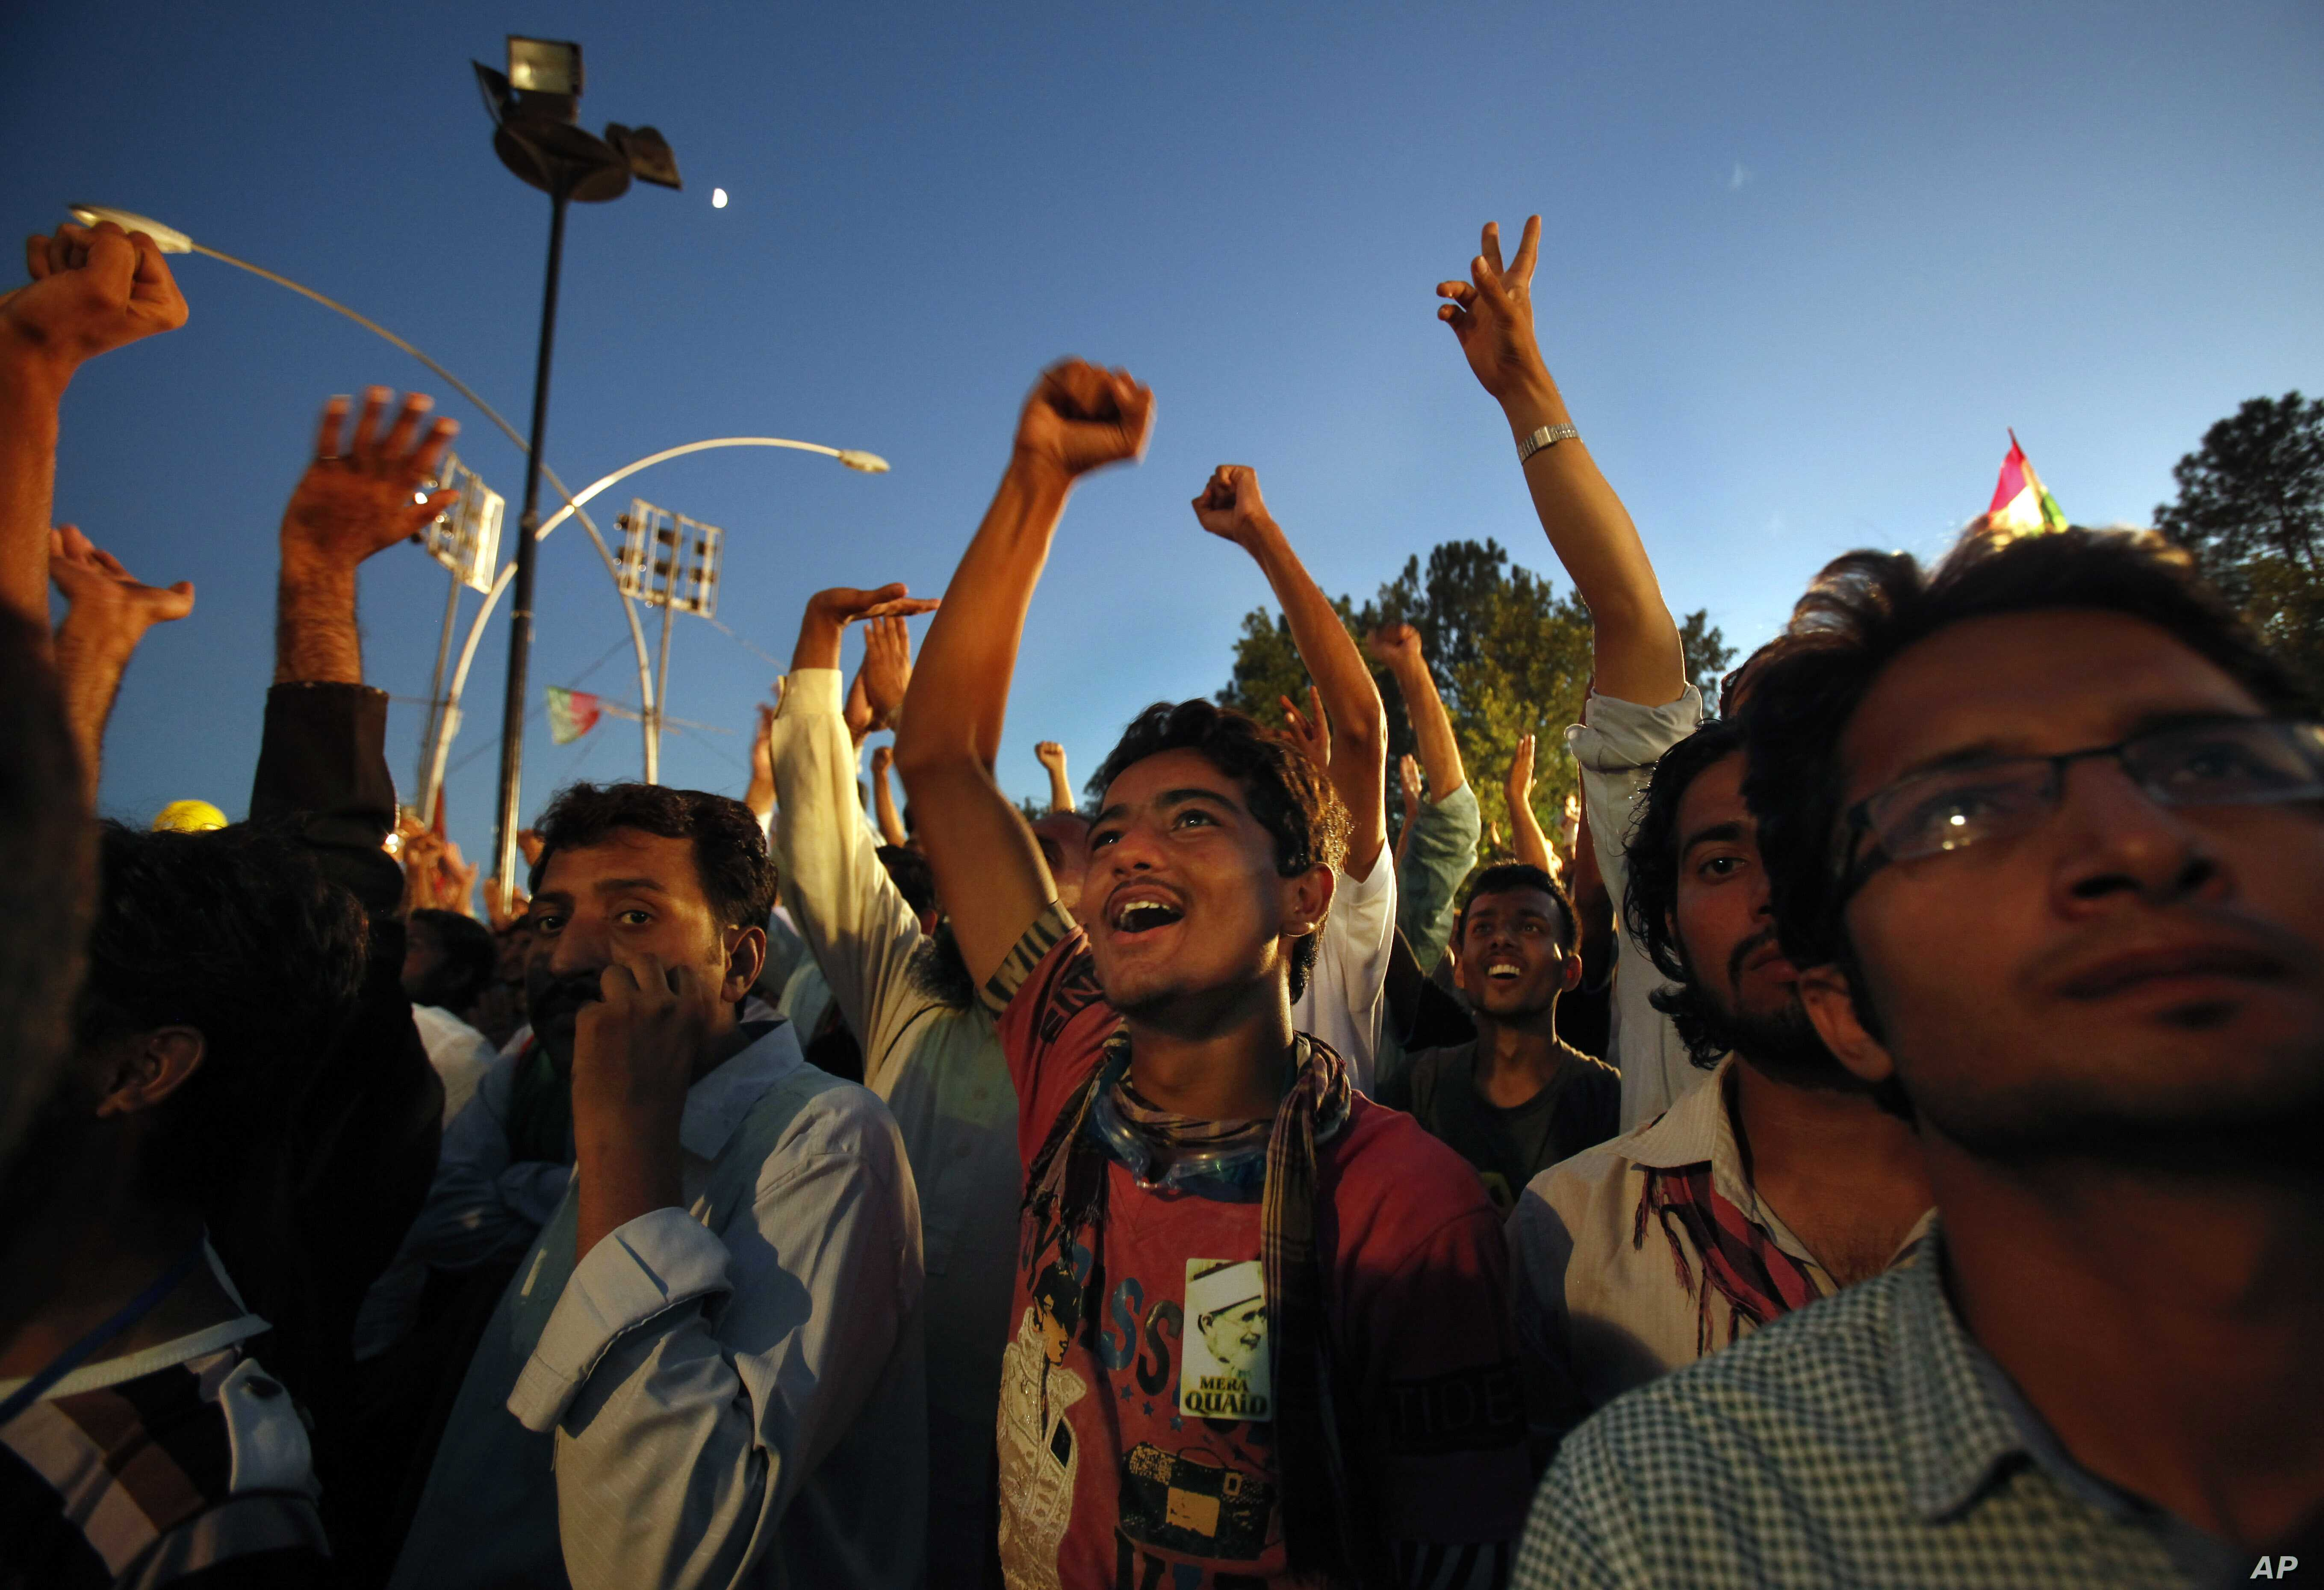 Supporters of Pakistan's fiery cleric Tahir-ul-Qadri chant slogans during a protest near Prime Minister's home in Islamabad, Pakistan, Tuesday, Sept. 2, 2014. Anti-government demonstrators led by opposition politician Khan and Tahir-ul-Qadri converge